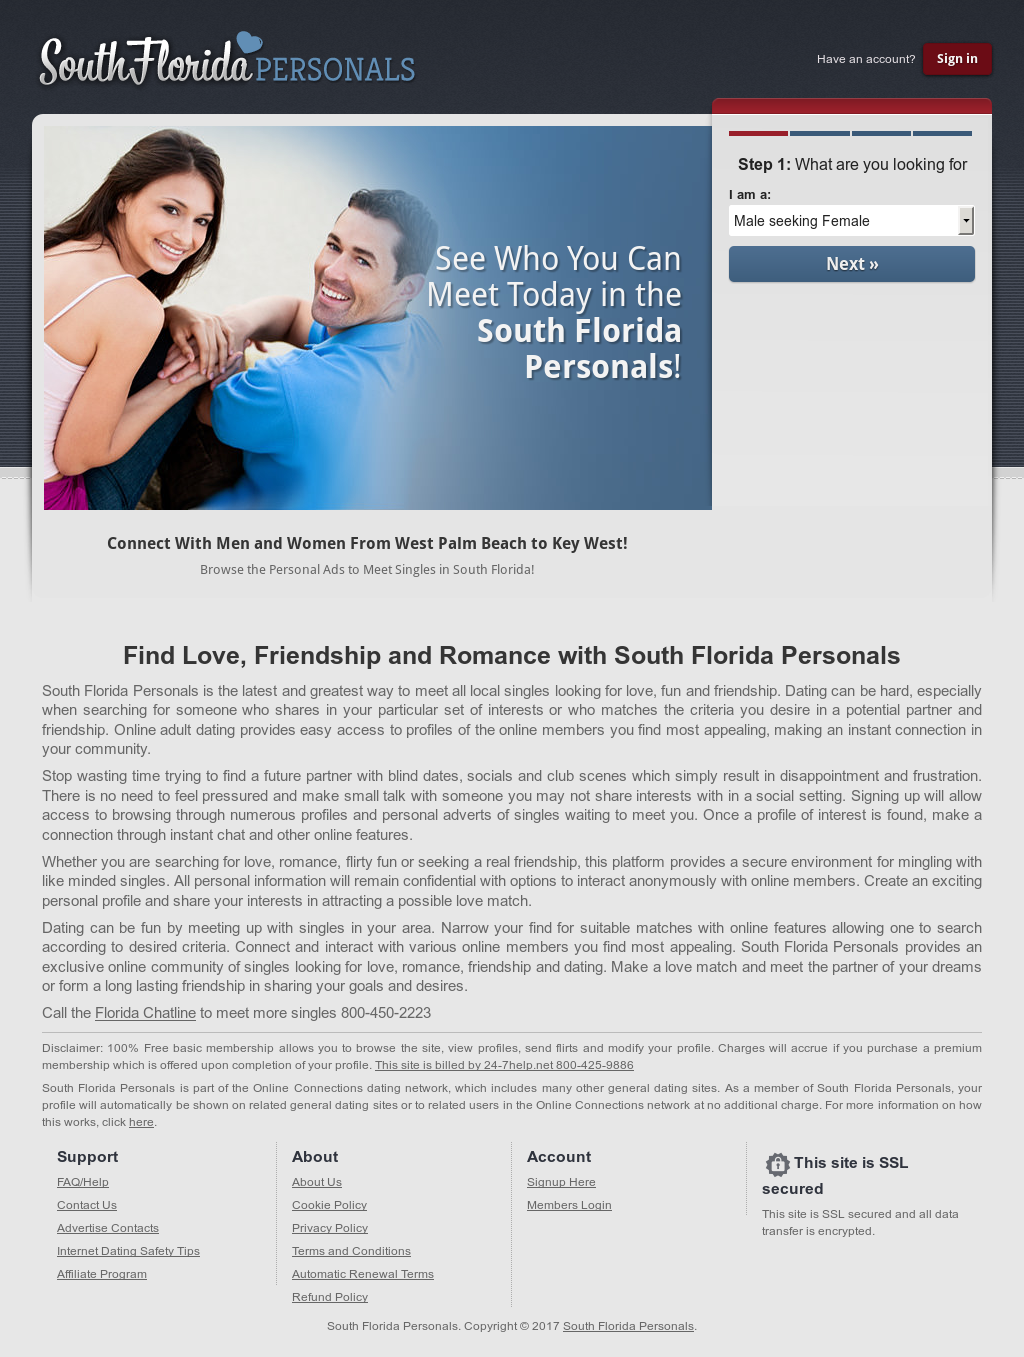 South Florida Personals Competitors, Revenue and Employees - Owler